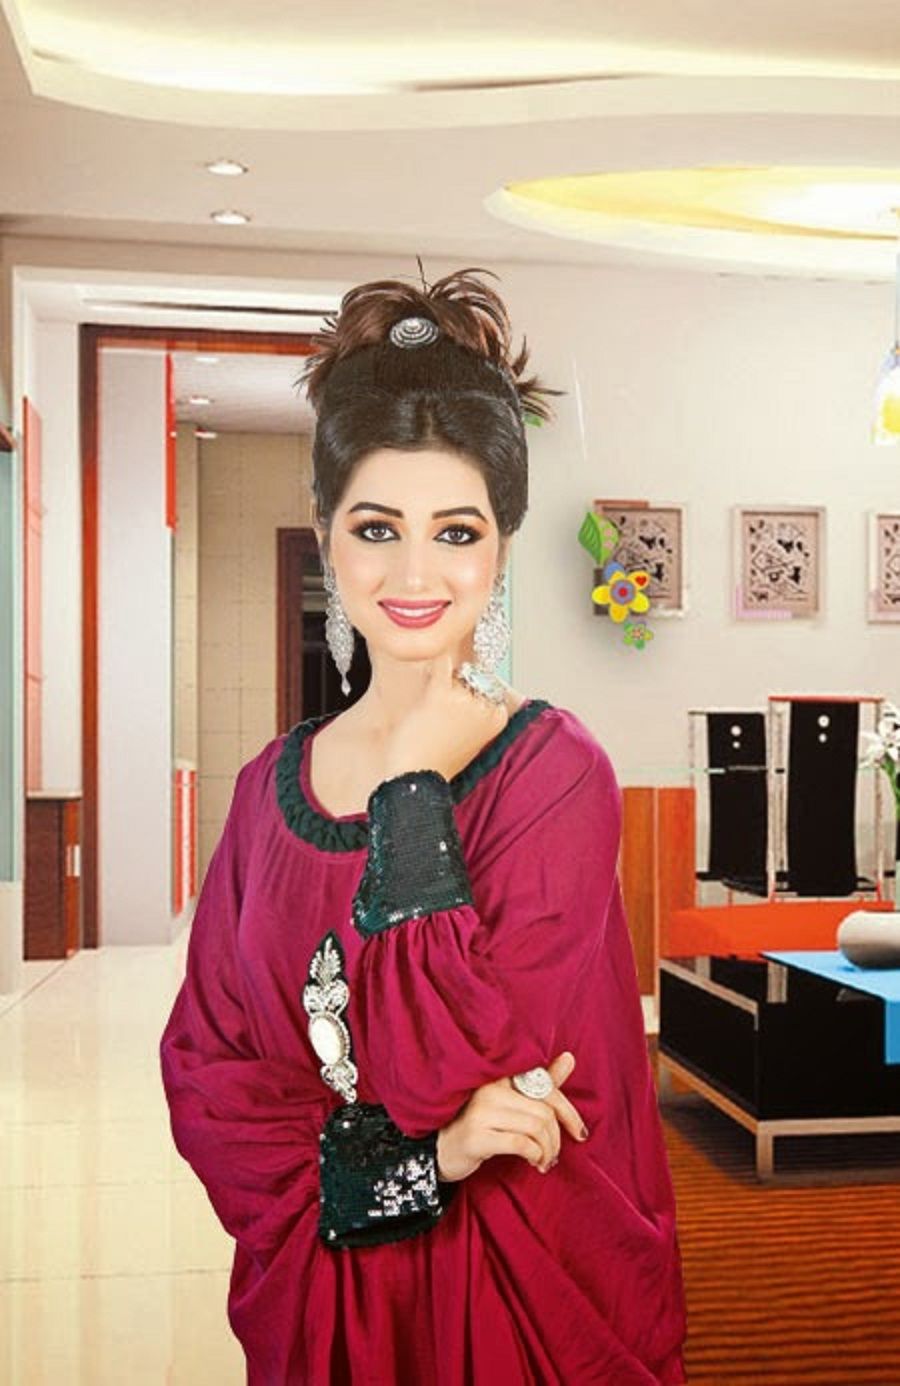 Cute And Stylish Baby Girl Wallpaper Most Beautiful Anum Fayyaz Images Hd Wallpaper All 4u